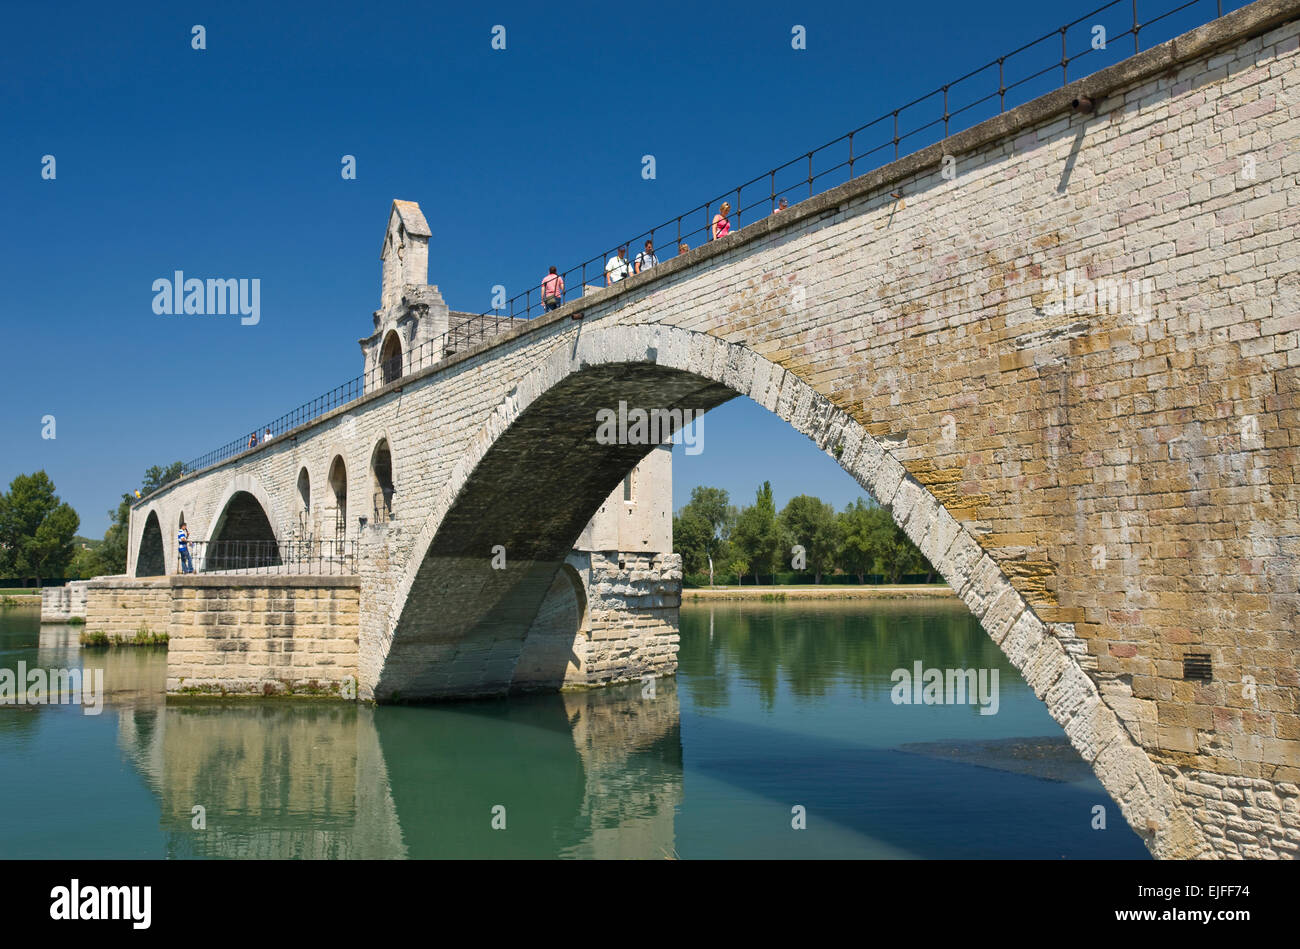 OLD STONE PONT SAINT BENEZET BRIDGE RHONE RIVER AVIGNON VAUCLUSE FRANCE - Stock Image